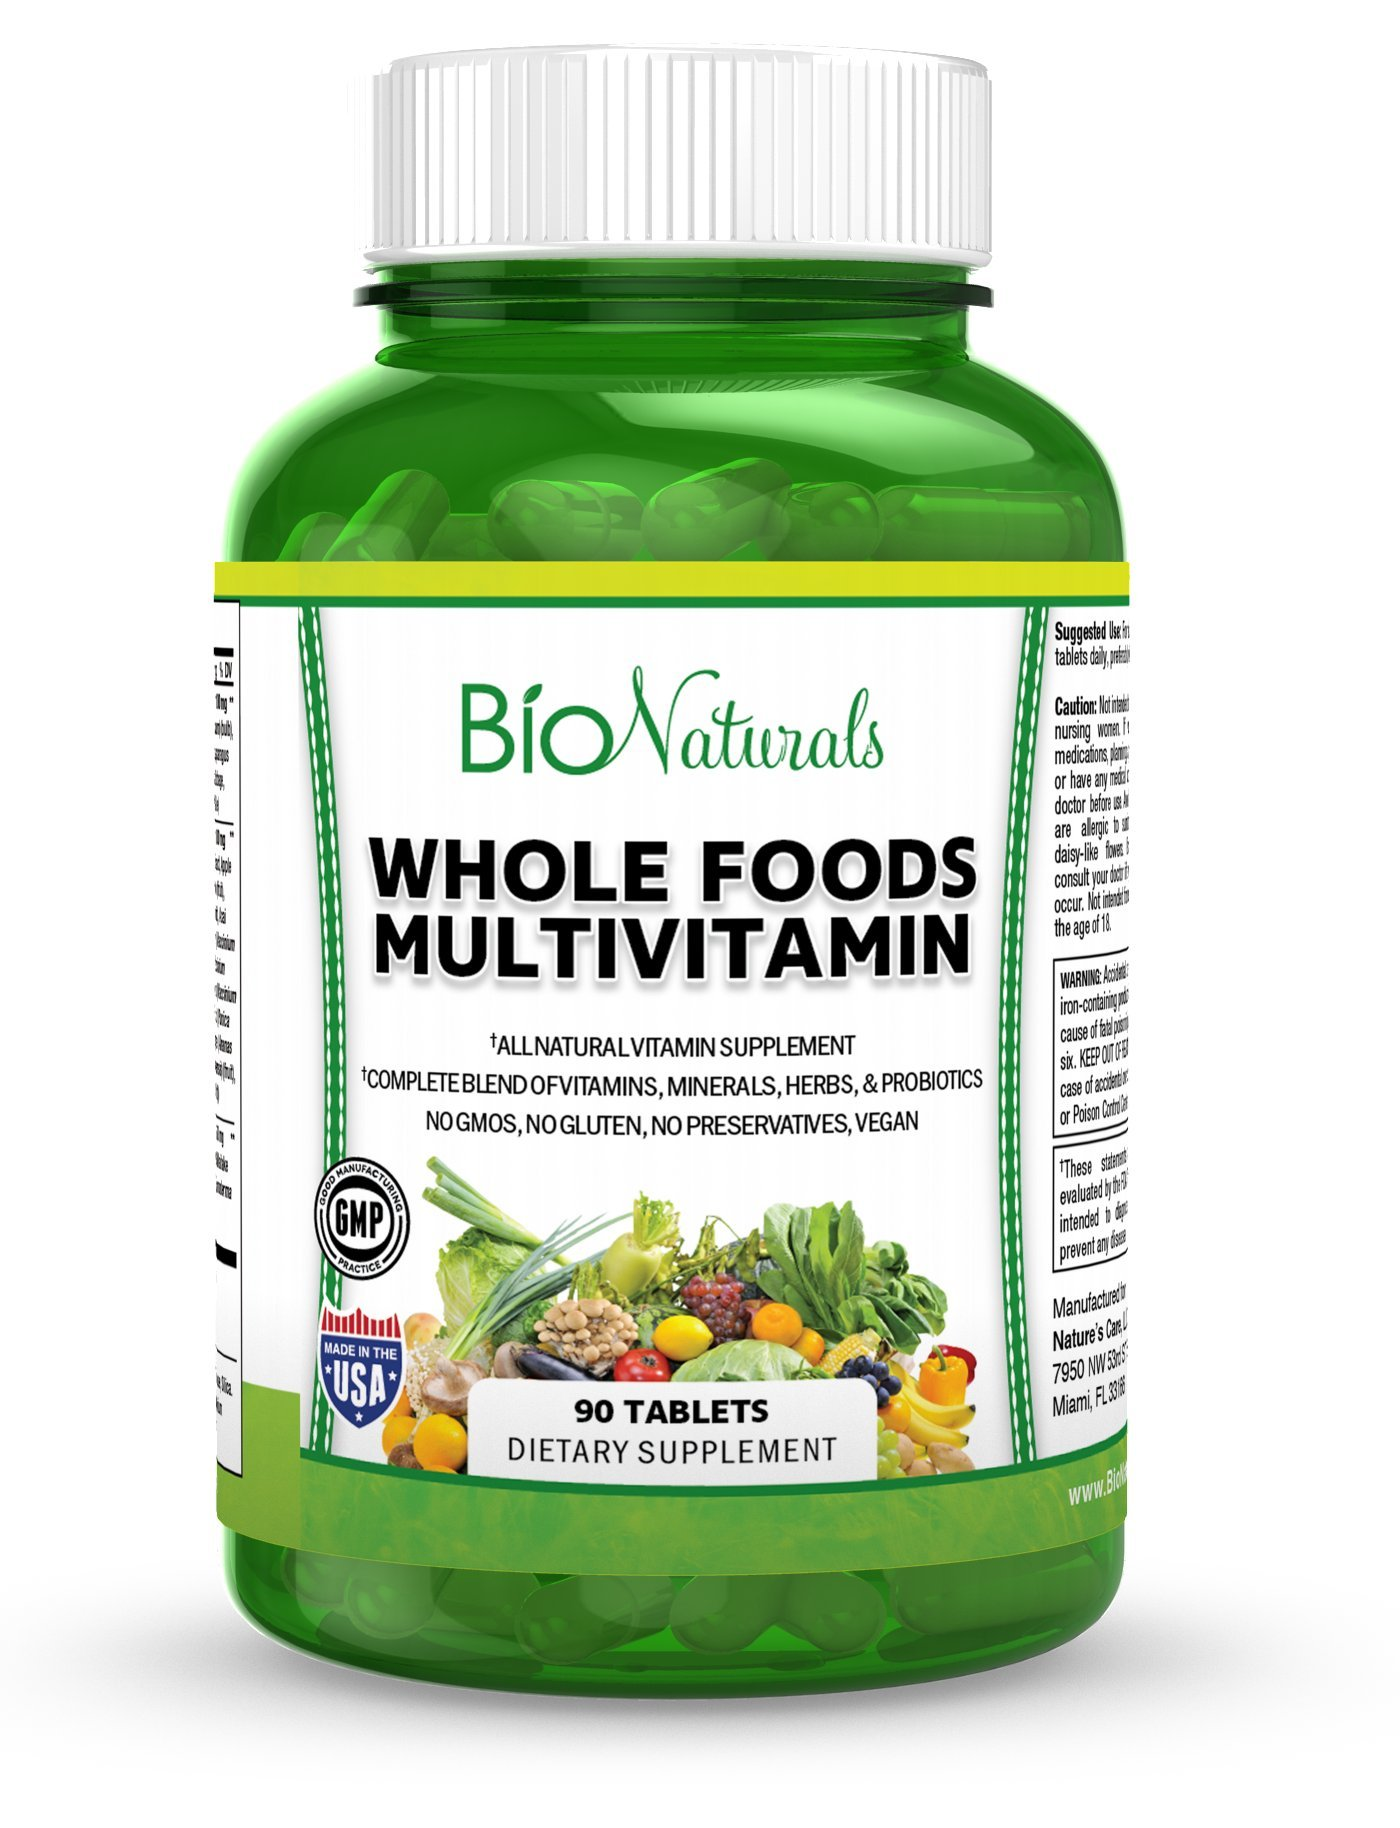 Whole Foods Multivitamin For Men & Women – 100% Natural & Vegan With Vitamins A B C D E, Minerals, Herbs, Omega 3, Probiotics, Organic Vegetable & Fruit Extracts – No GMOs or Gluten - 90 Tablets